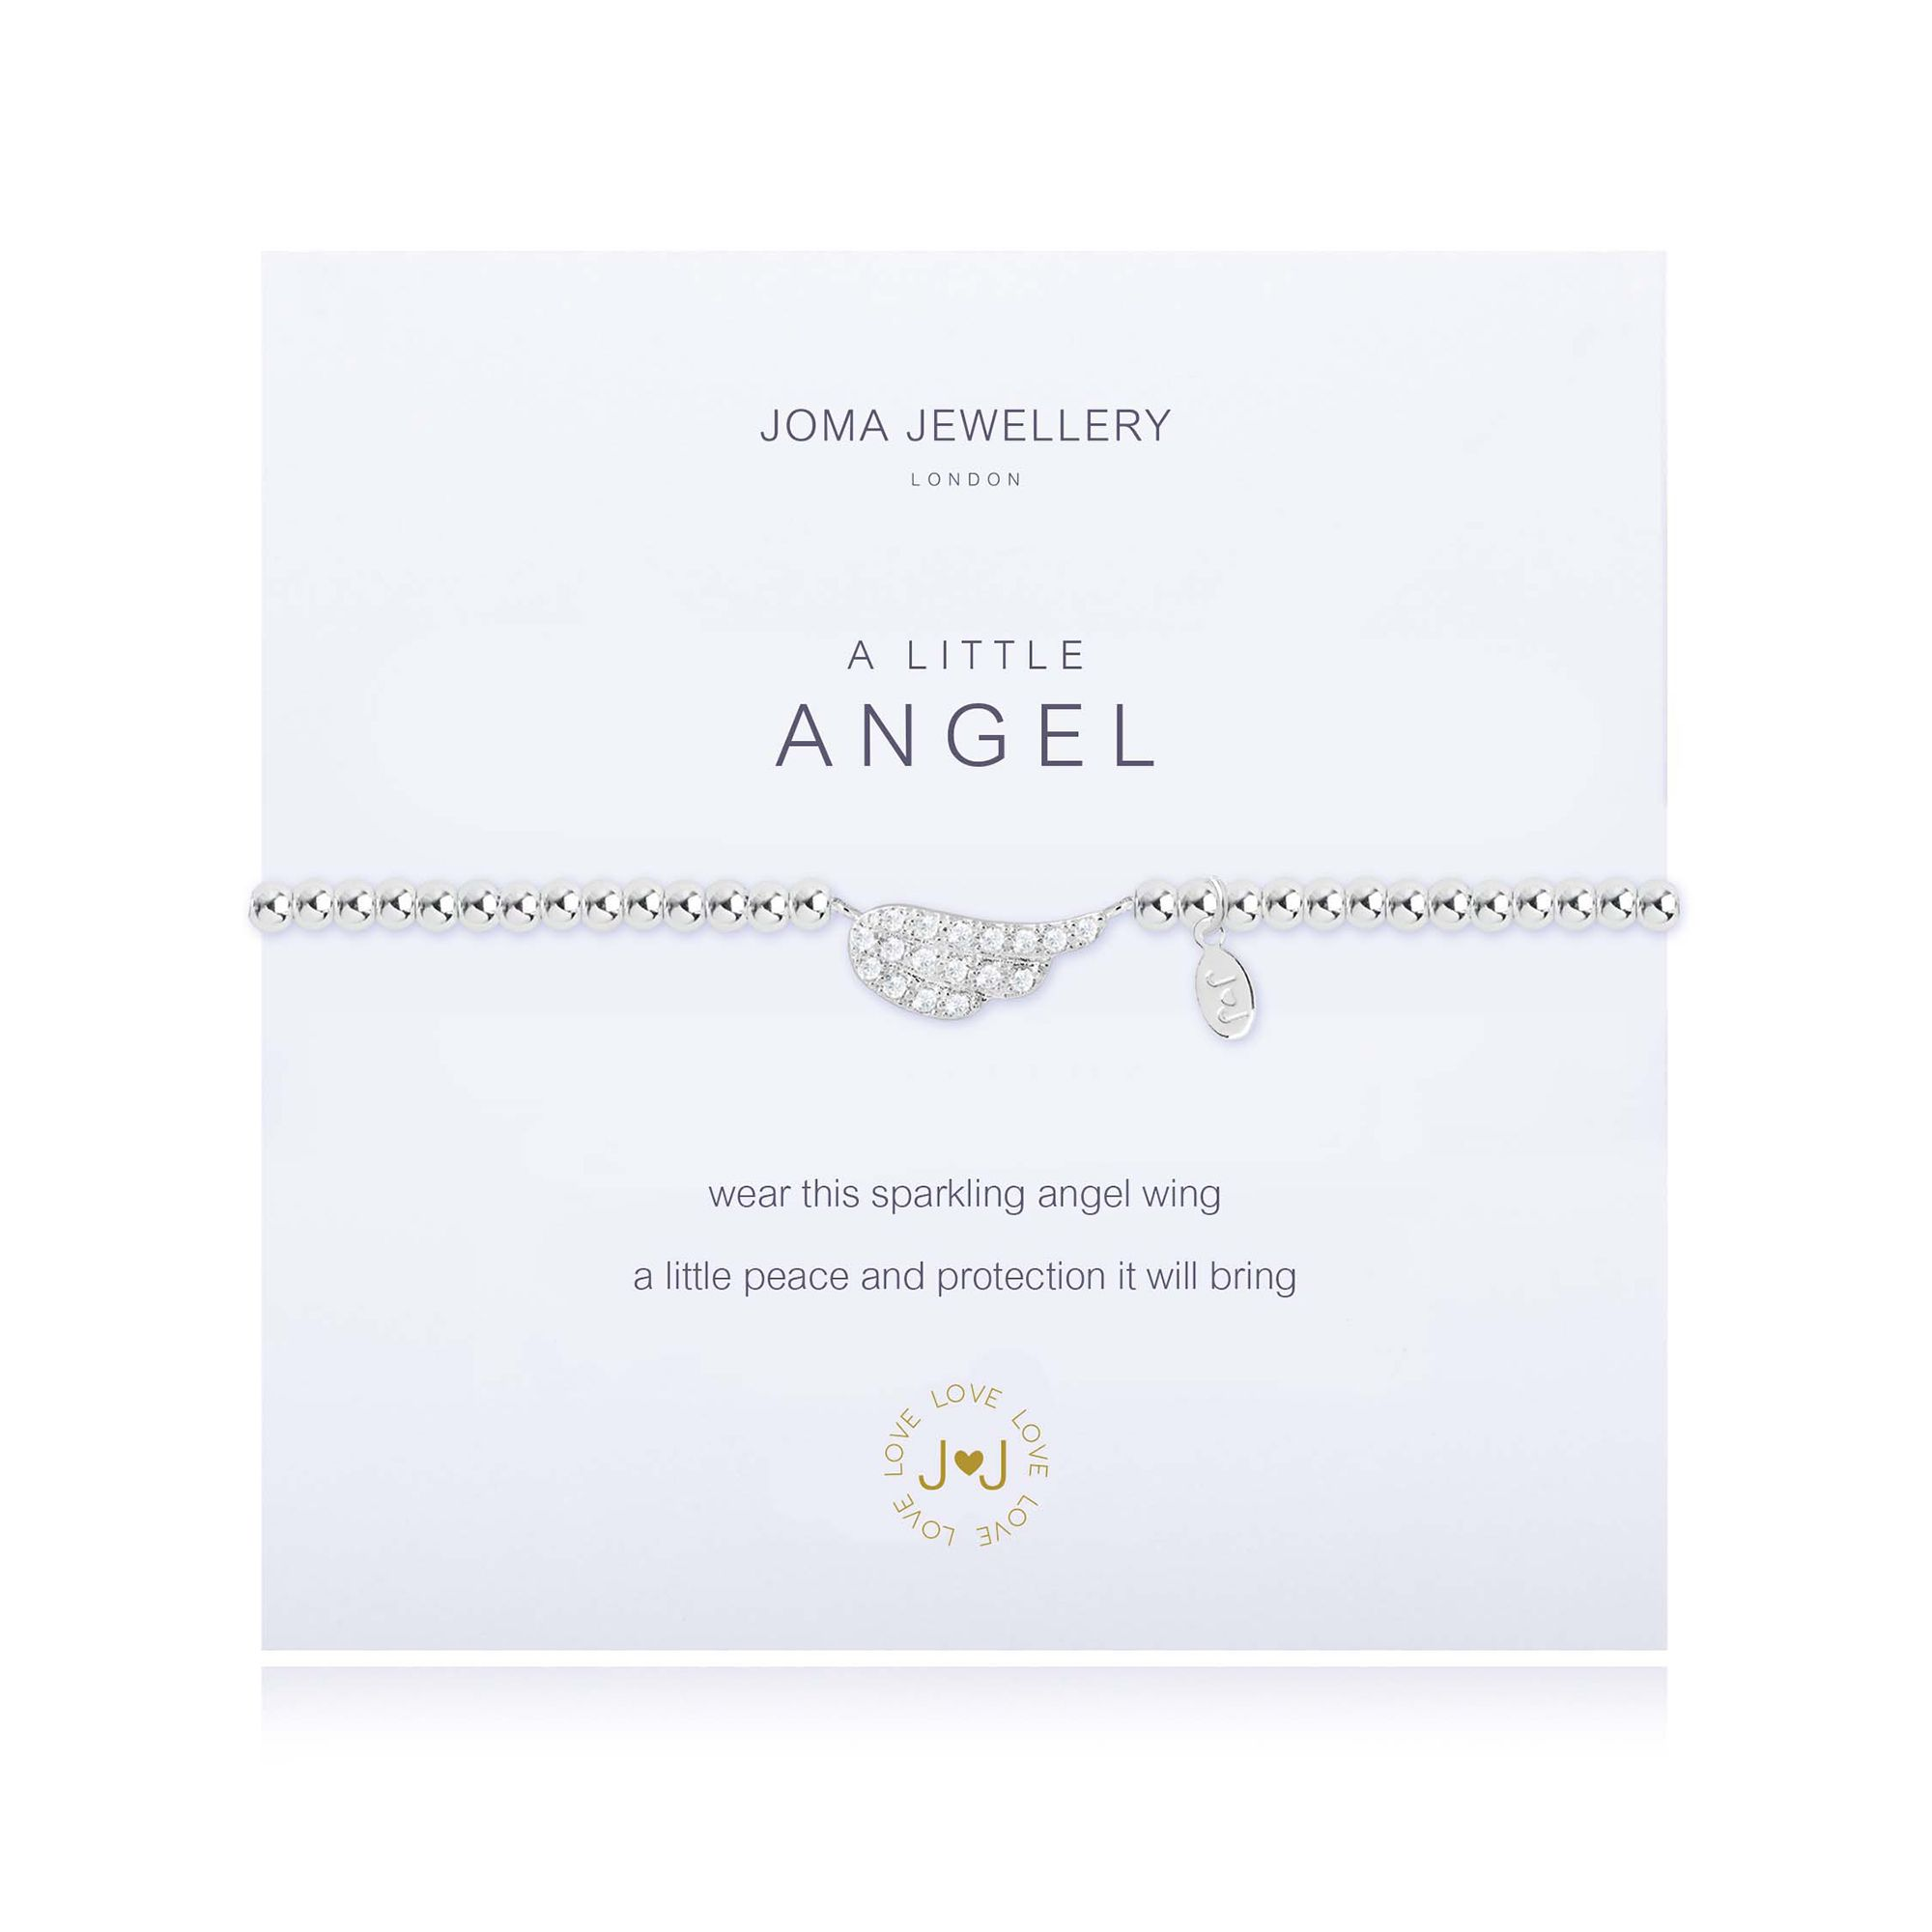 Joma Jewellery 1819 'A Little Angel' Bracelet Jewellery Joma Jewellery